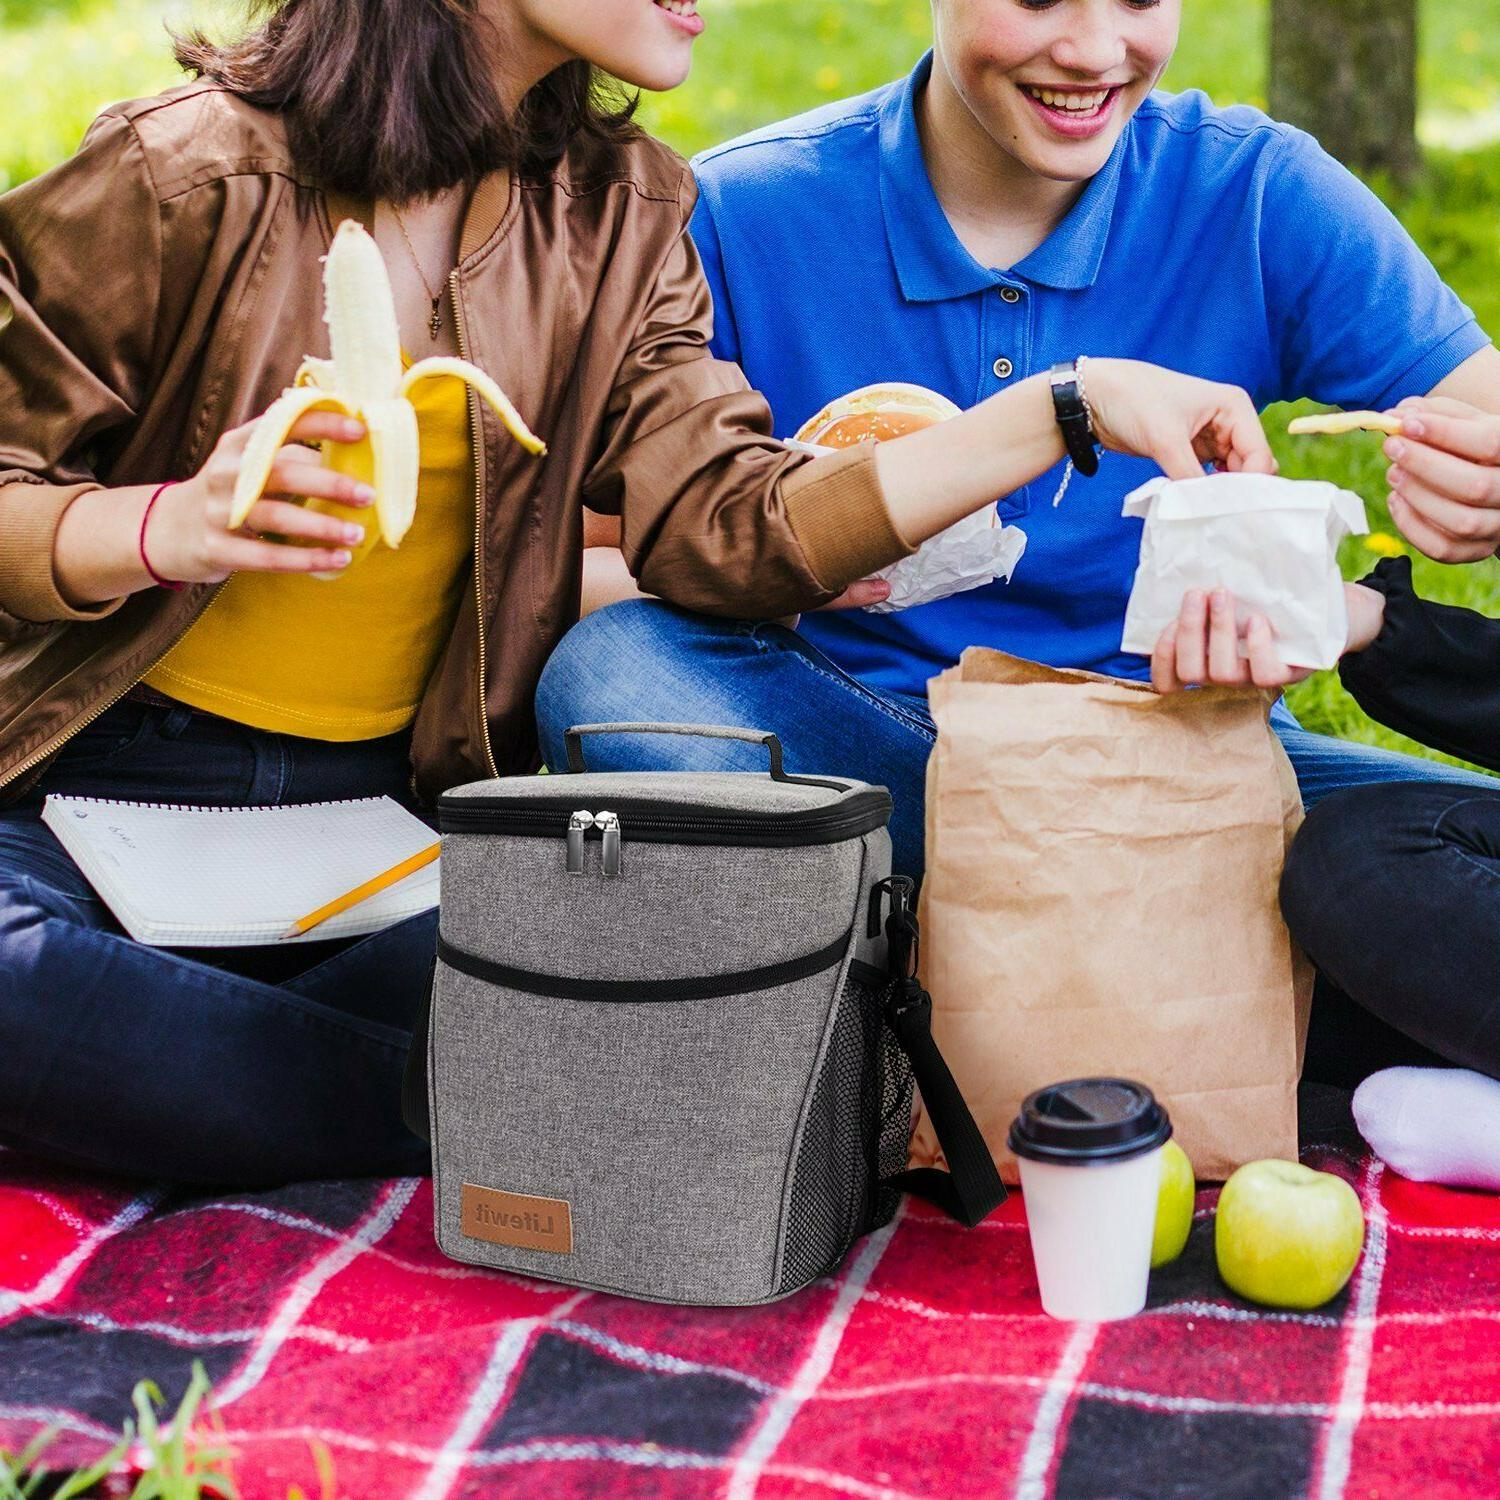 Lifewit Insulated Lunch Cooler Adults